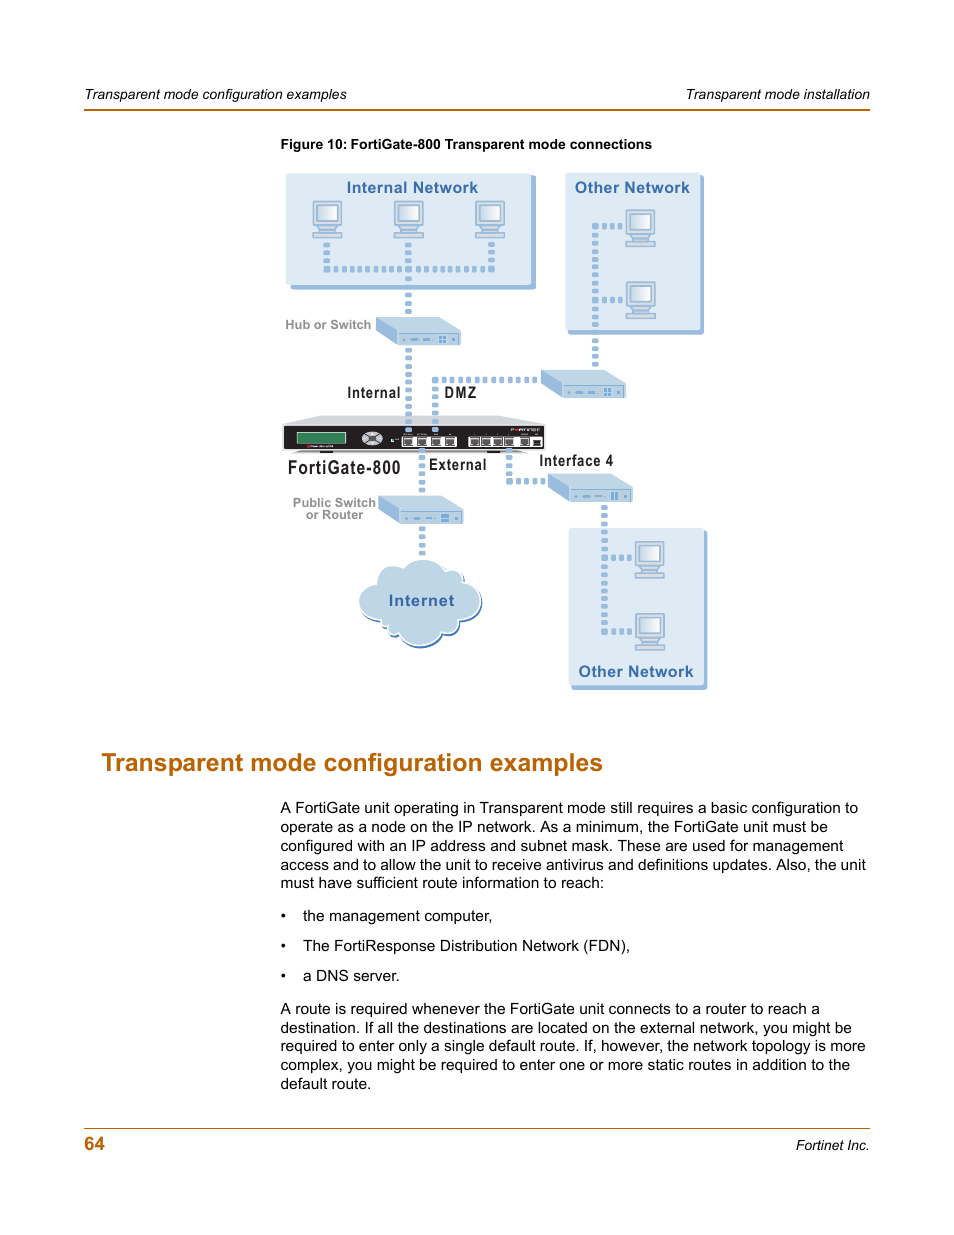 Transparent mode configuration examples, Fortigate-800 | Fortinet